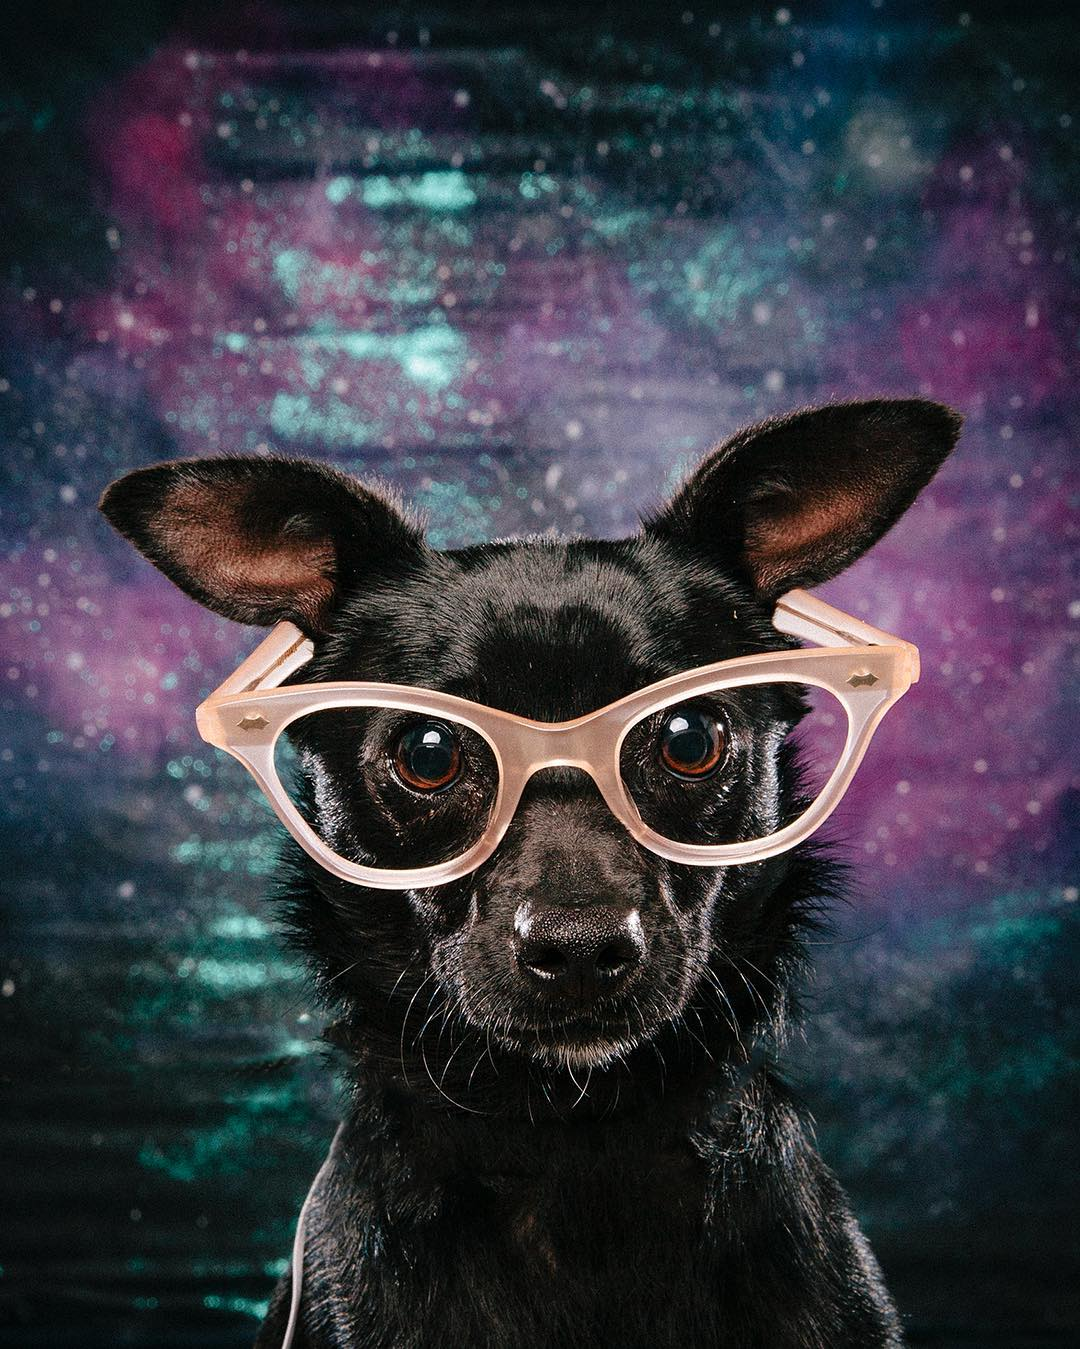 Arouty-Galaxy-Glamor-adopt-Mona-pastel-glasses